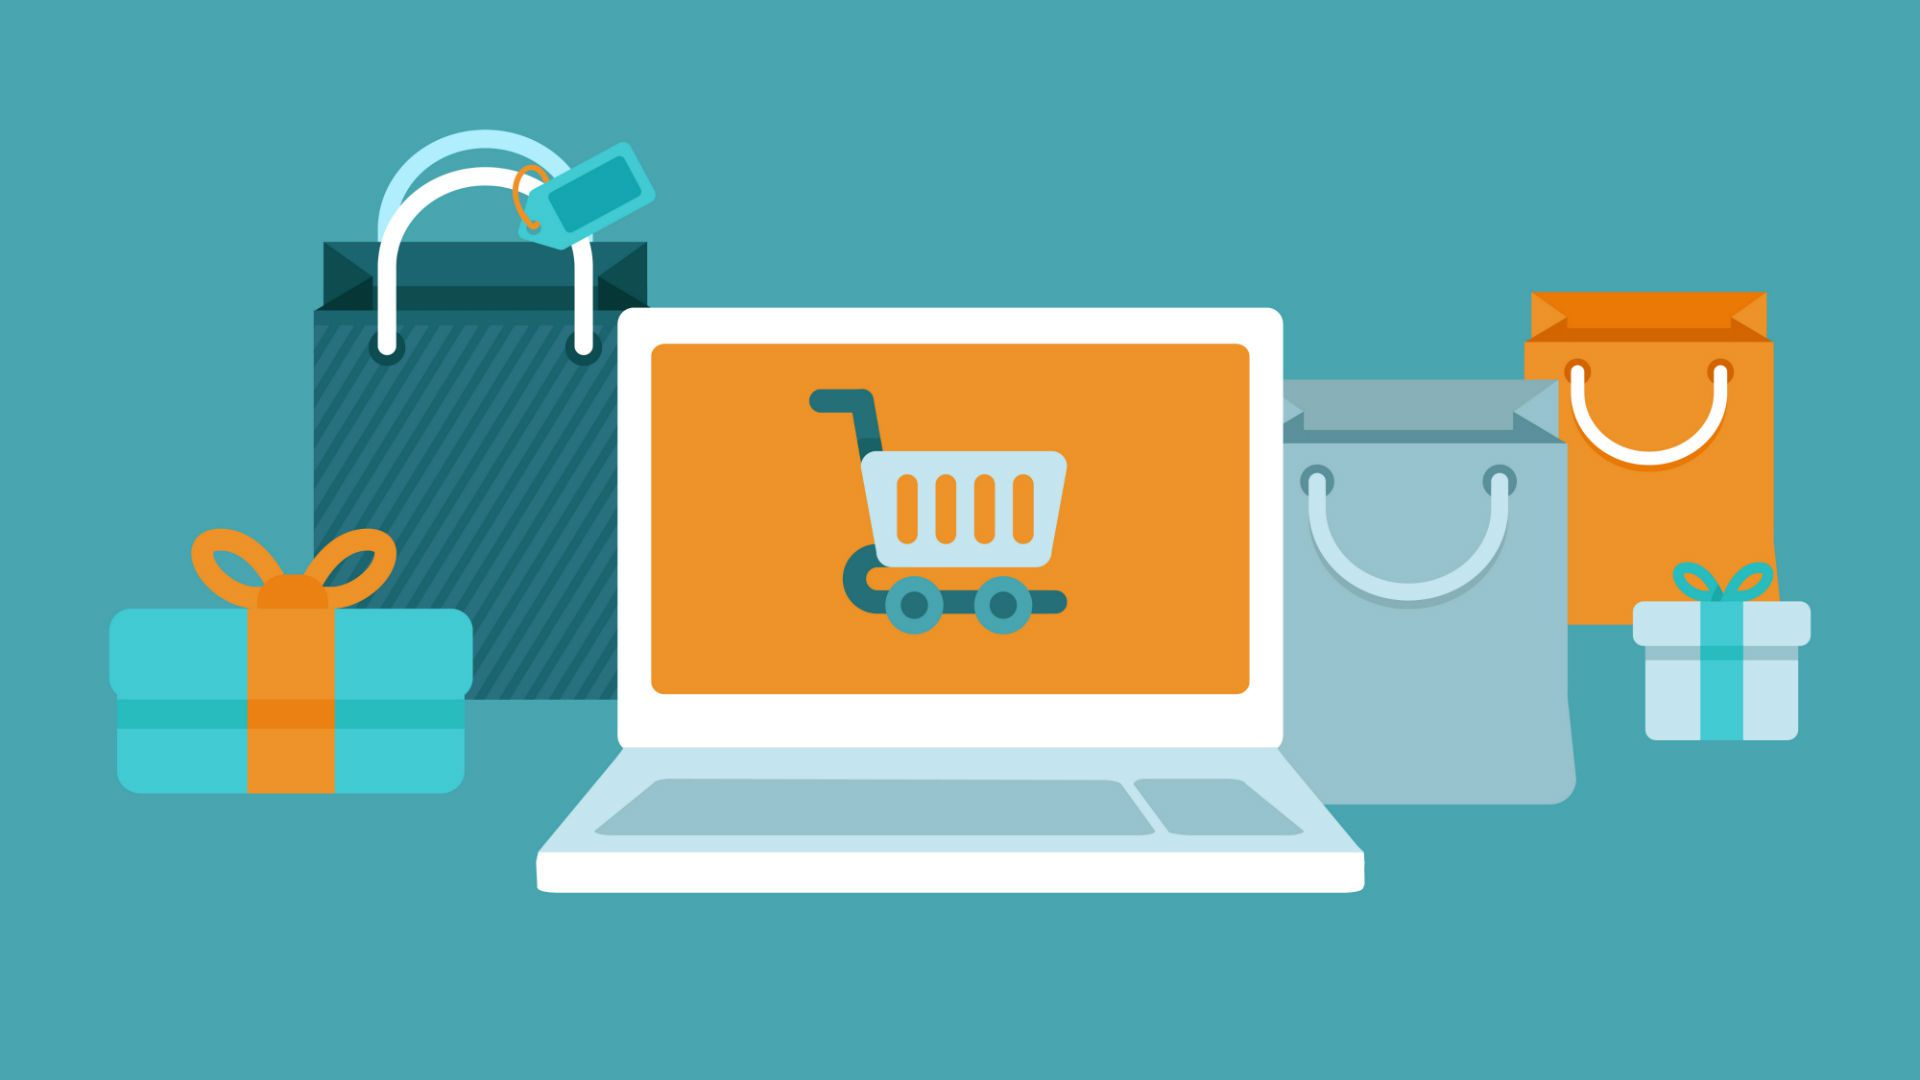 ecommerce shopping retail